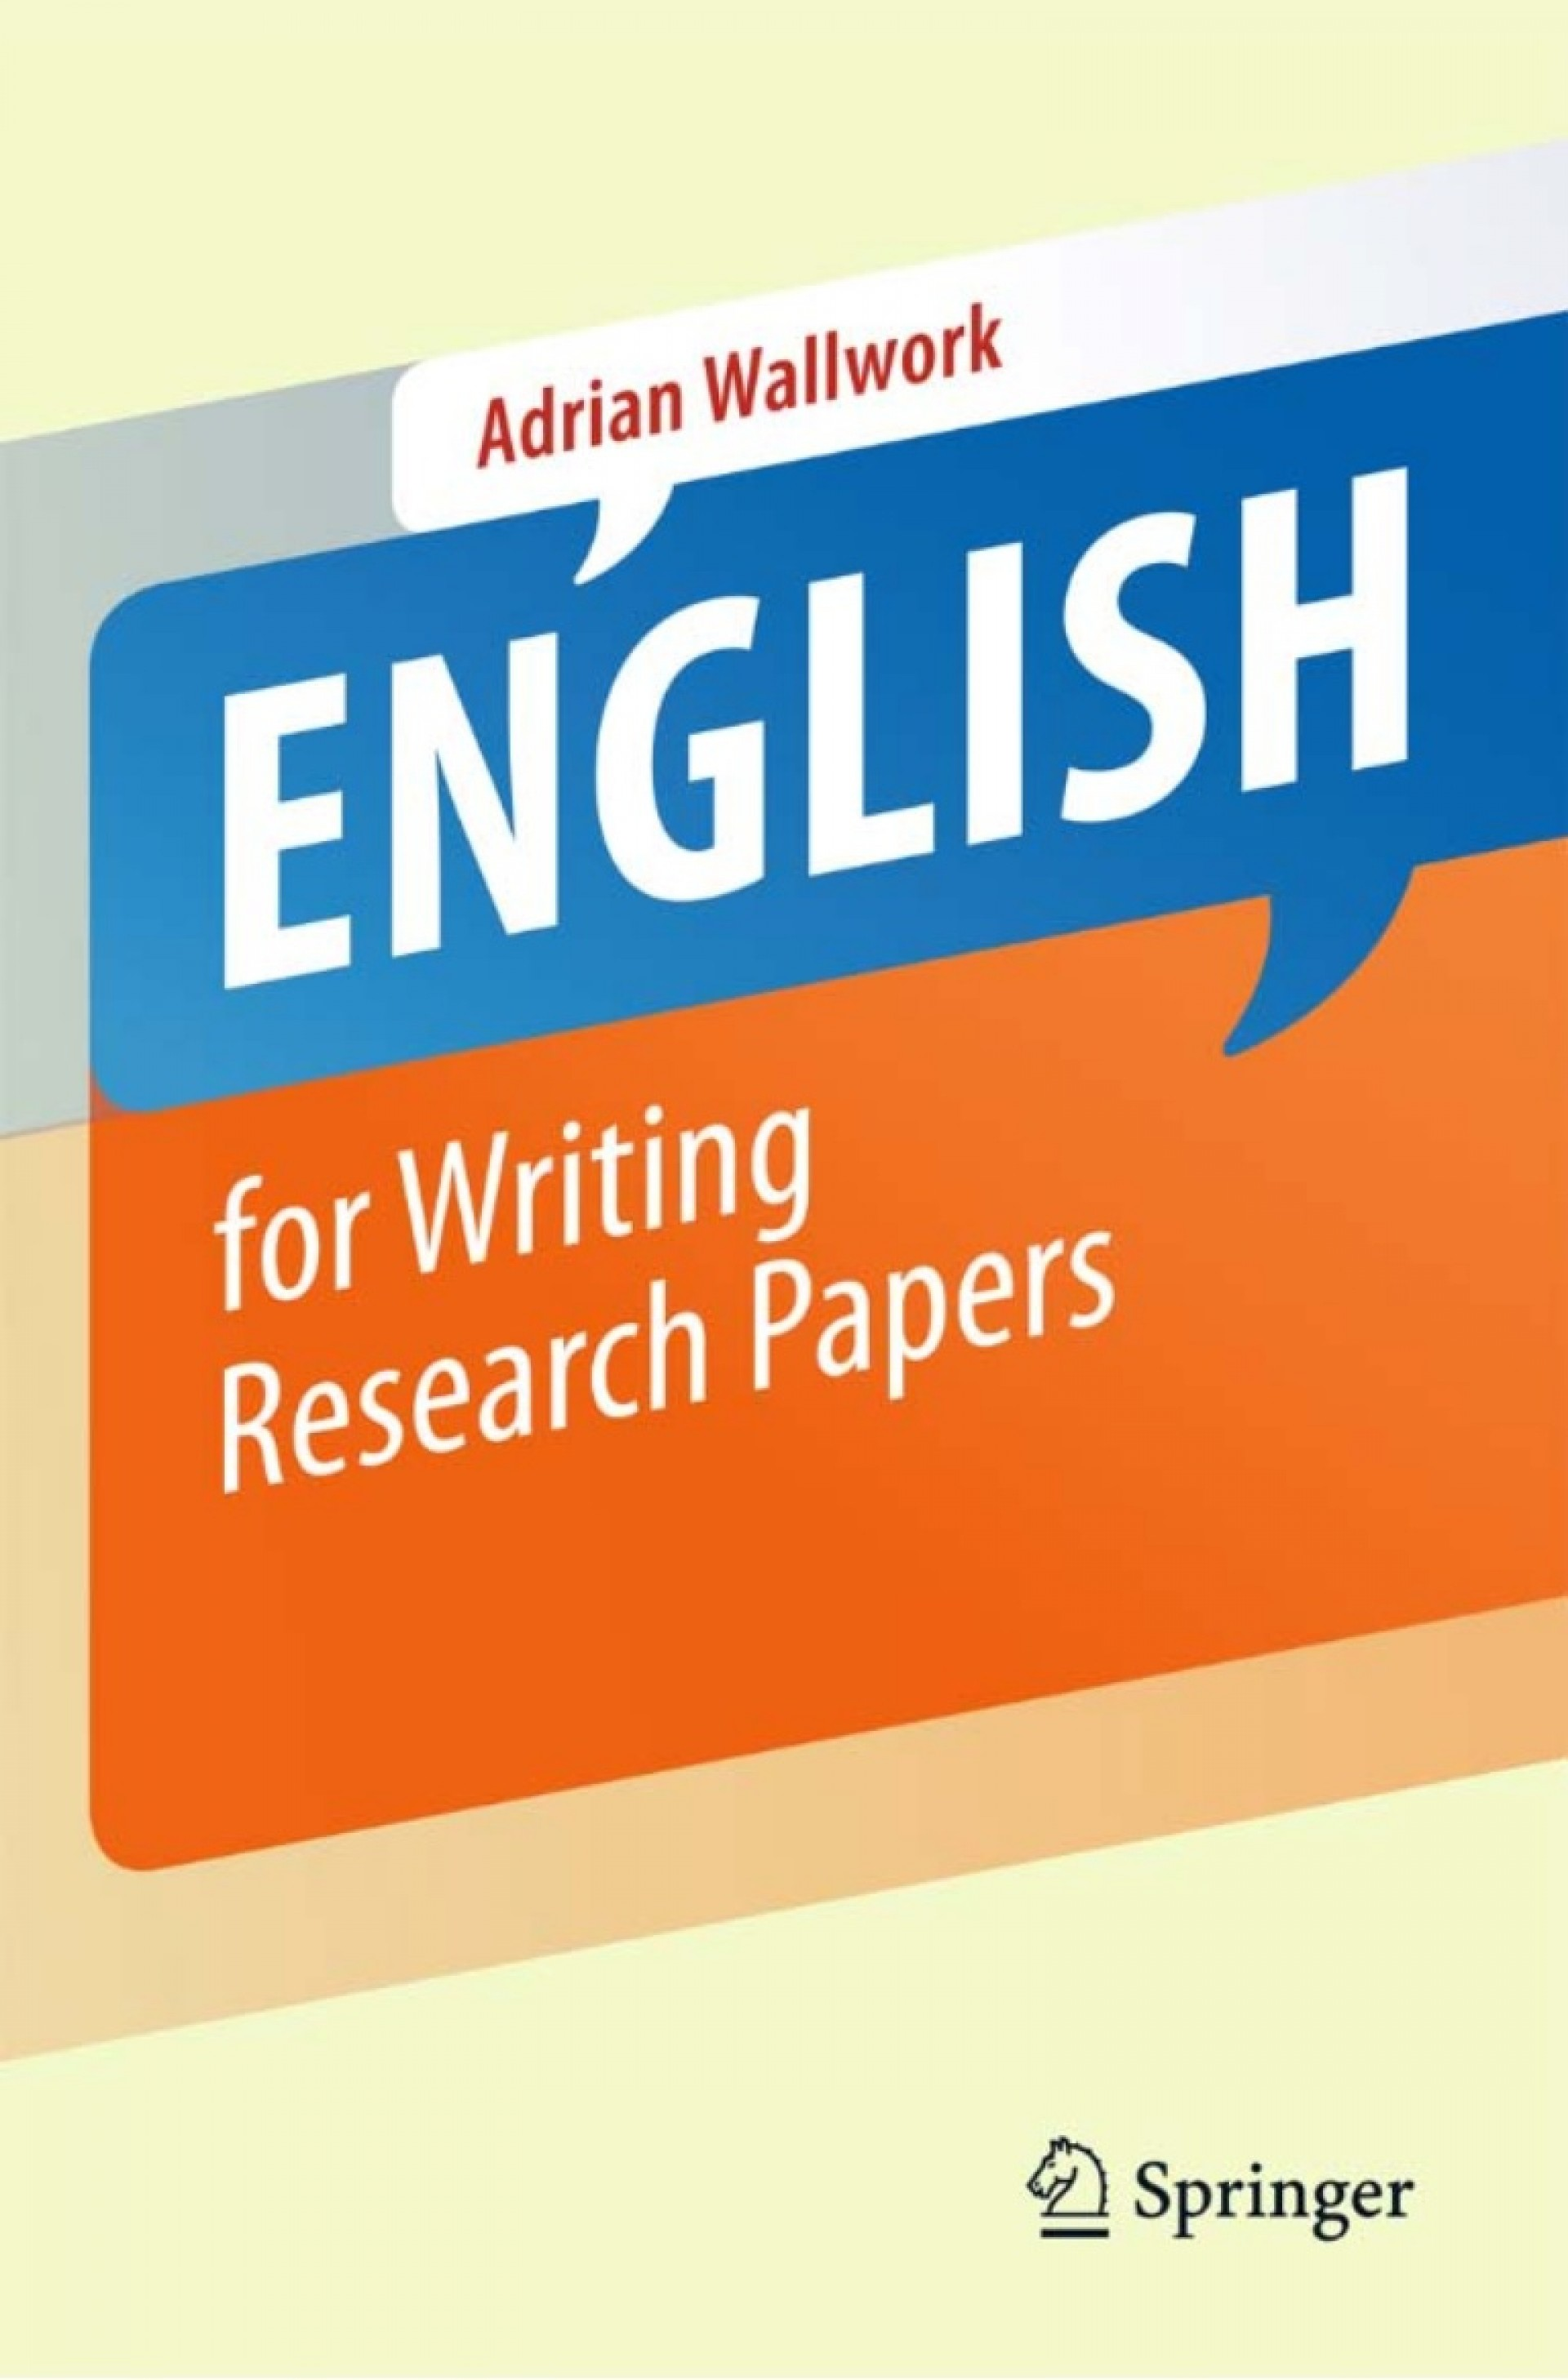 016 Research Paper Writing Papers Englishforwritingresearchpapers Conversion Gate01 Thumbnail Unique A Complete Guide 15th Edition Ebook 16th Pdf Free 1920